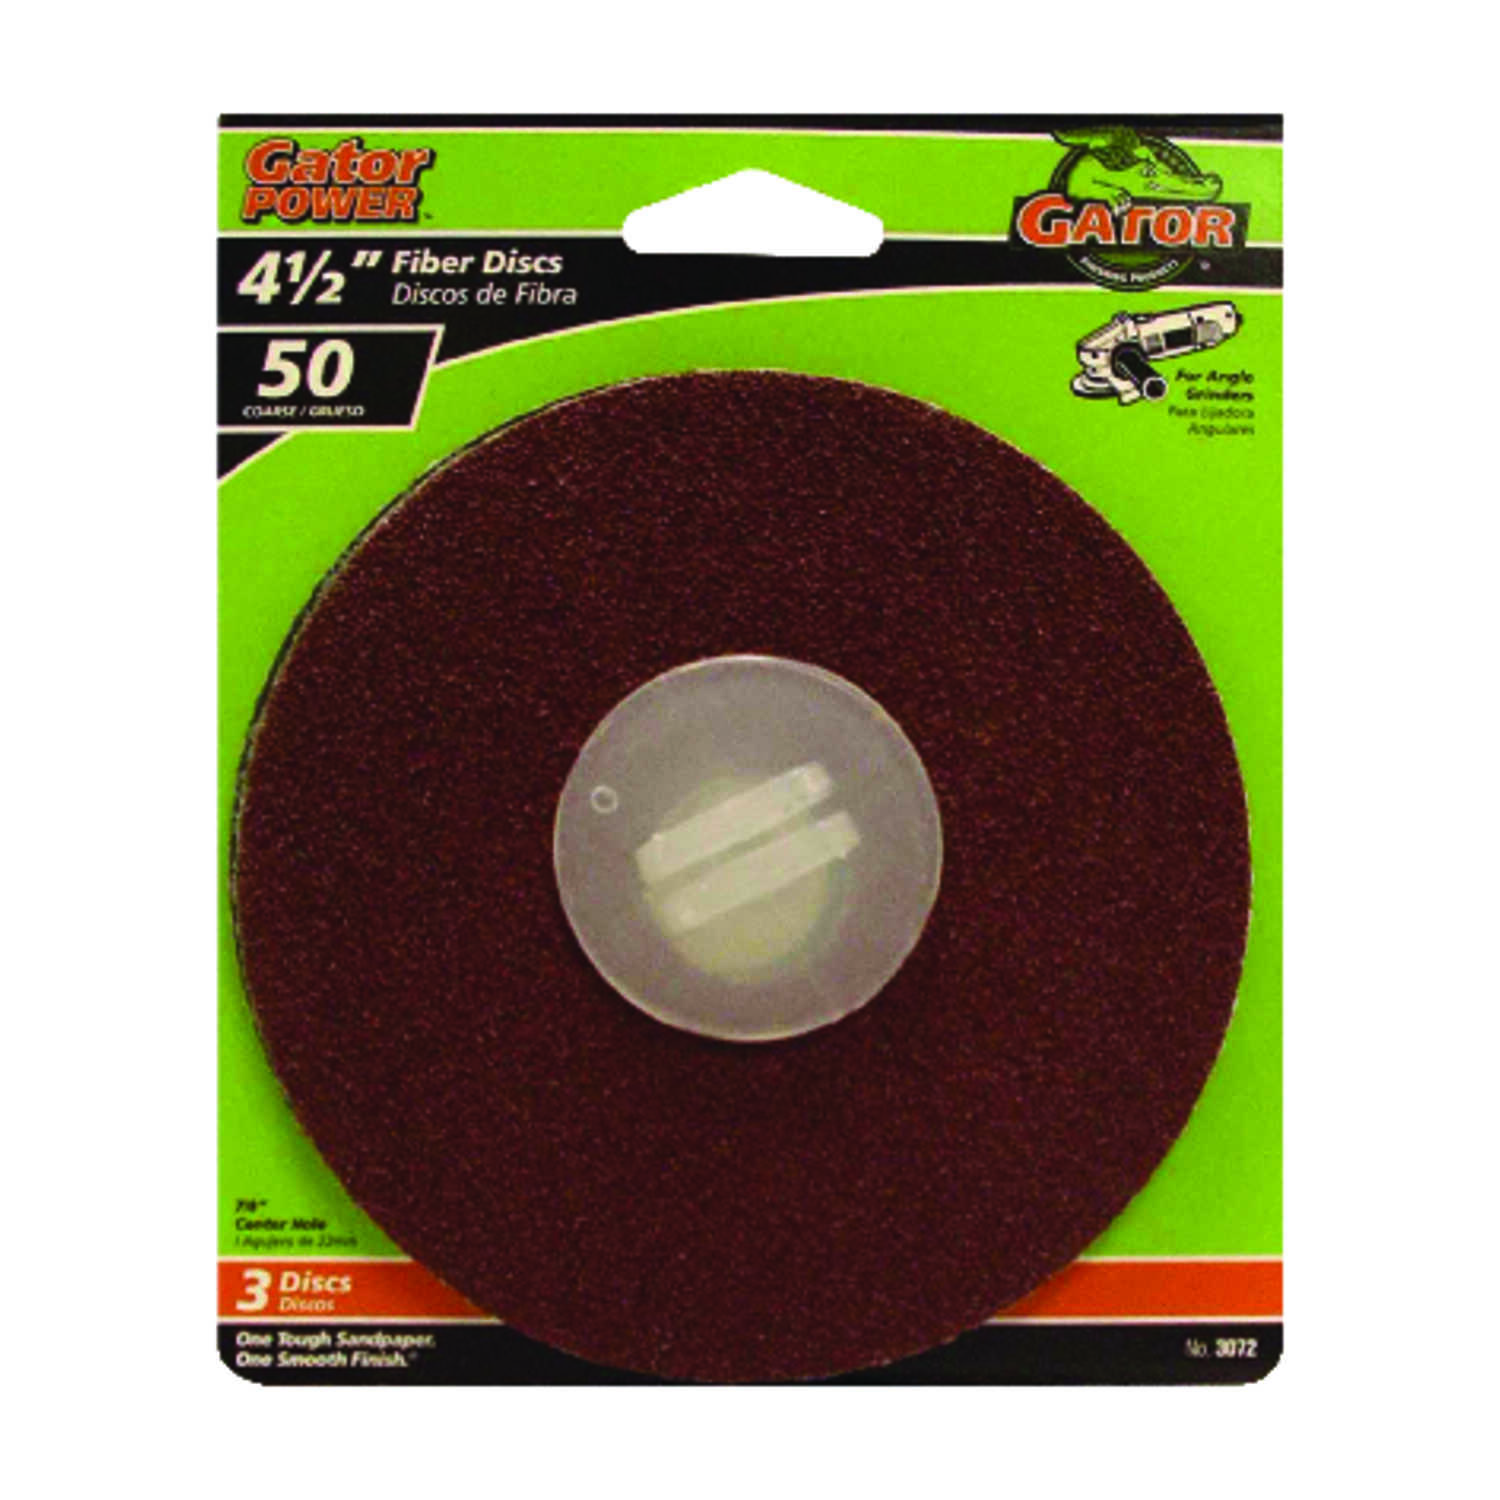 Gator  4.5 in. Aluminum Oxide  Center Mount  Fiber Disc  50 Grit Coarse  3 pk